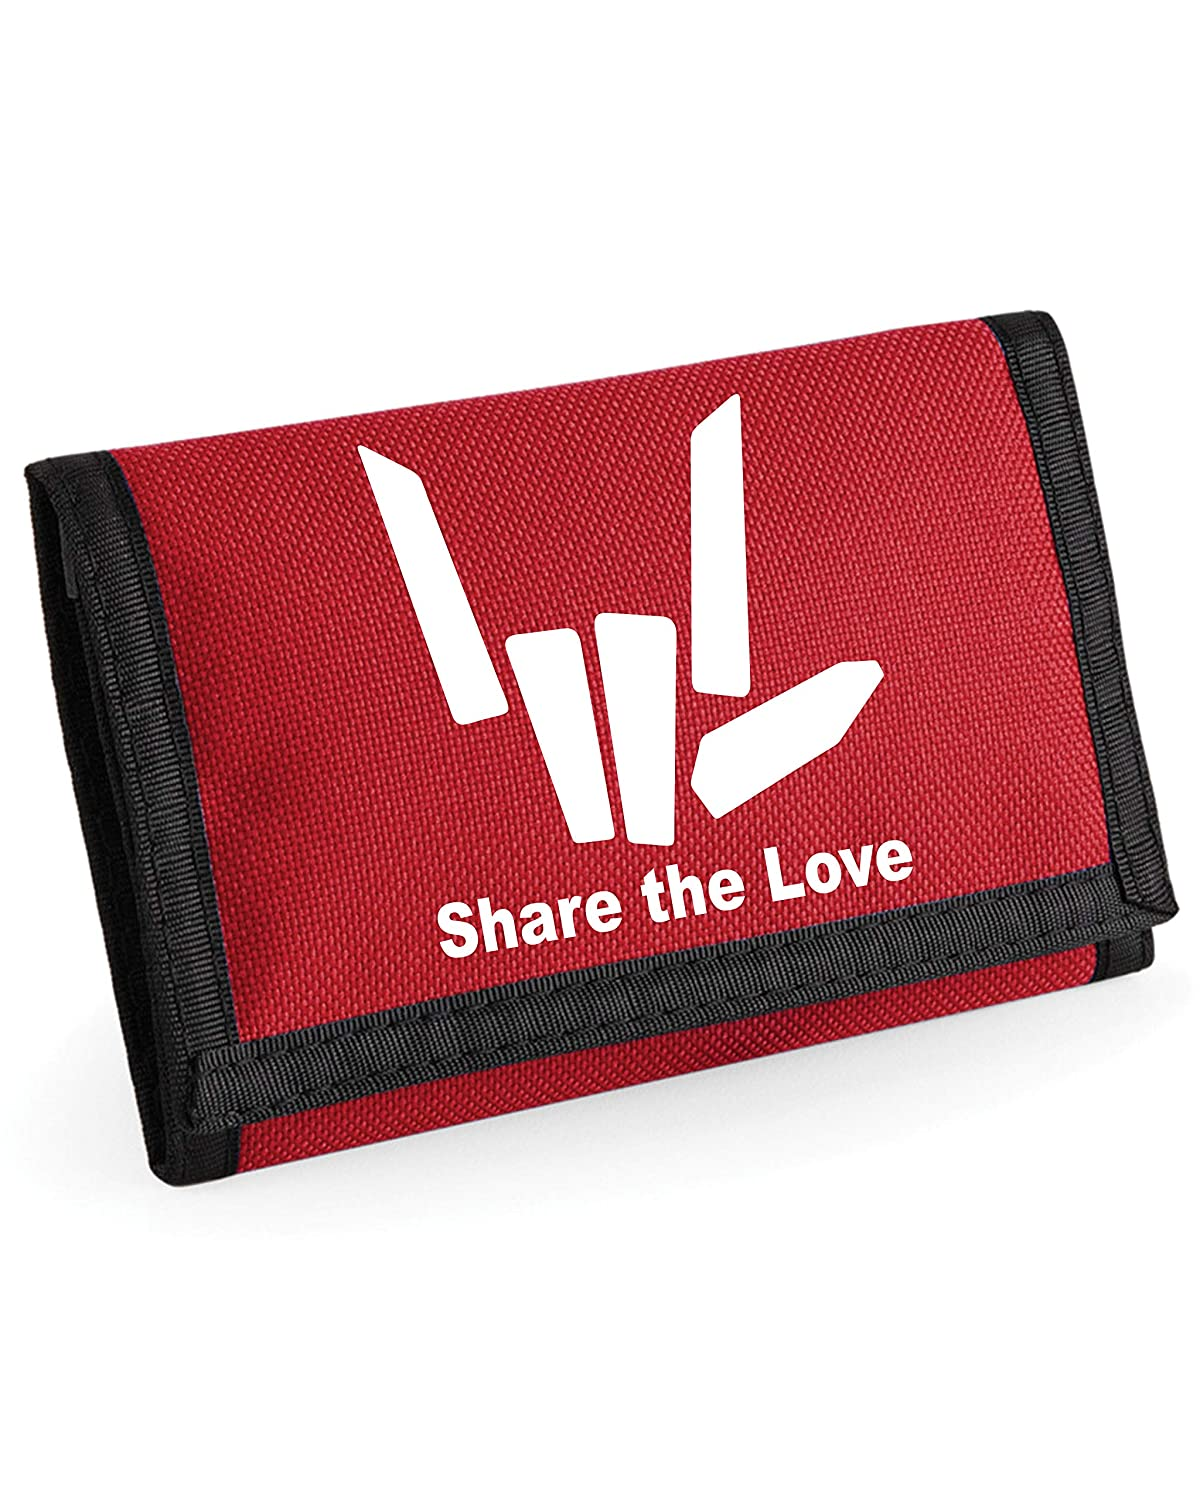 Boys share the love wallet